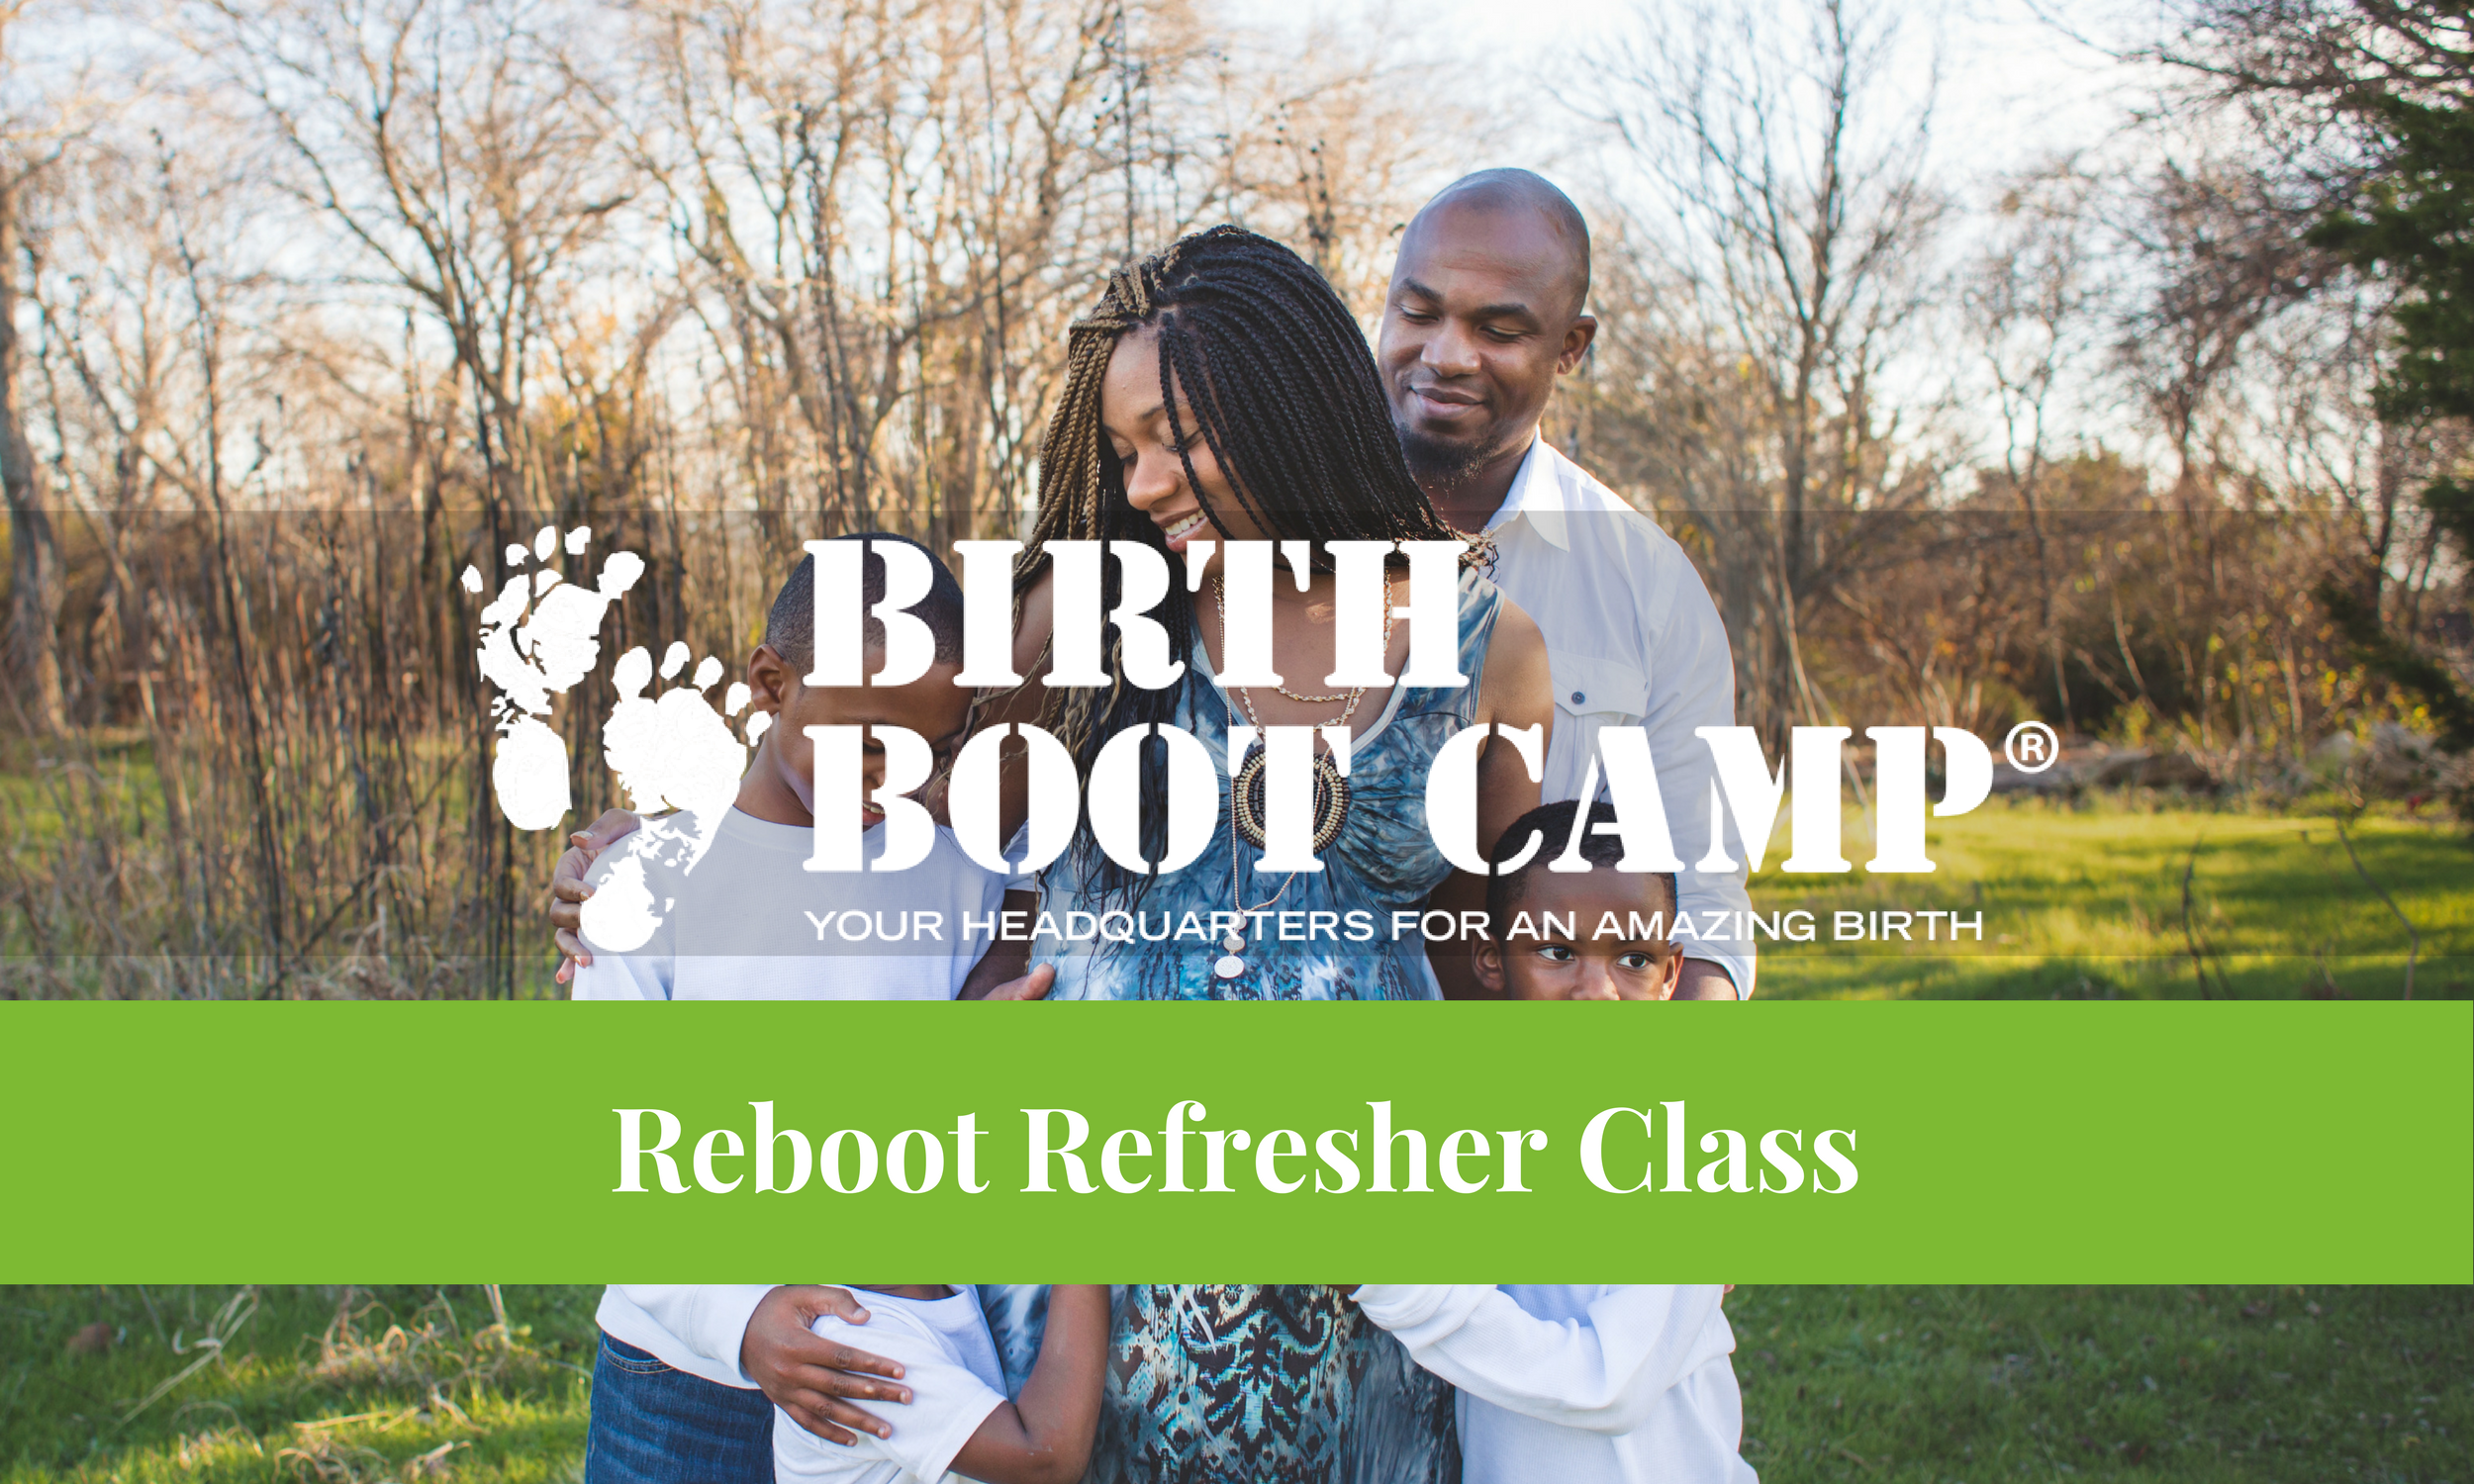 Birth Boot Camp Reboot Refresher Class taught by Melanie Galloway.